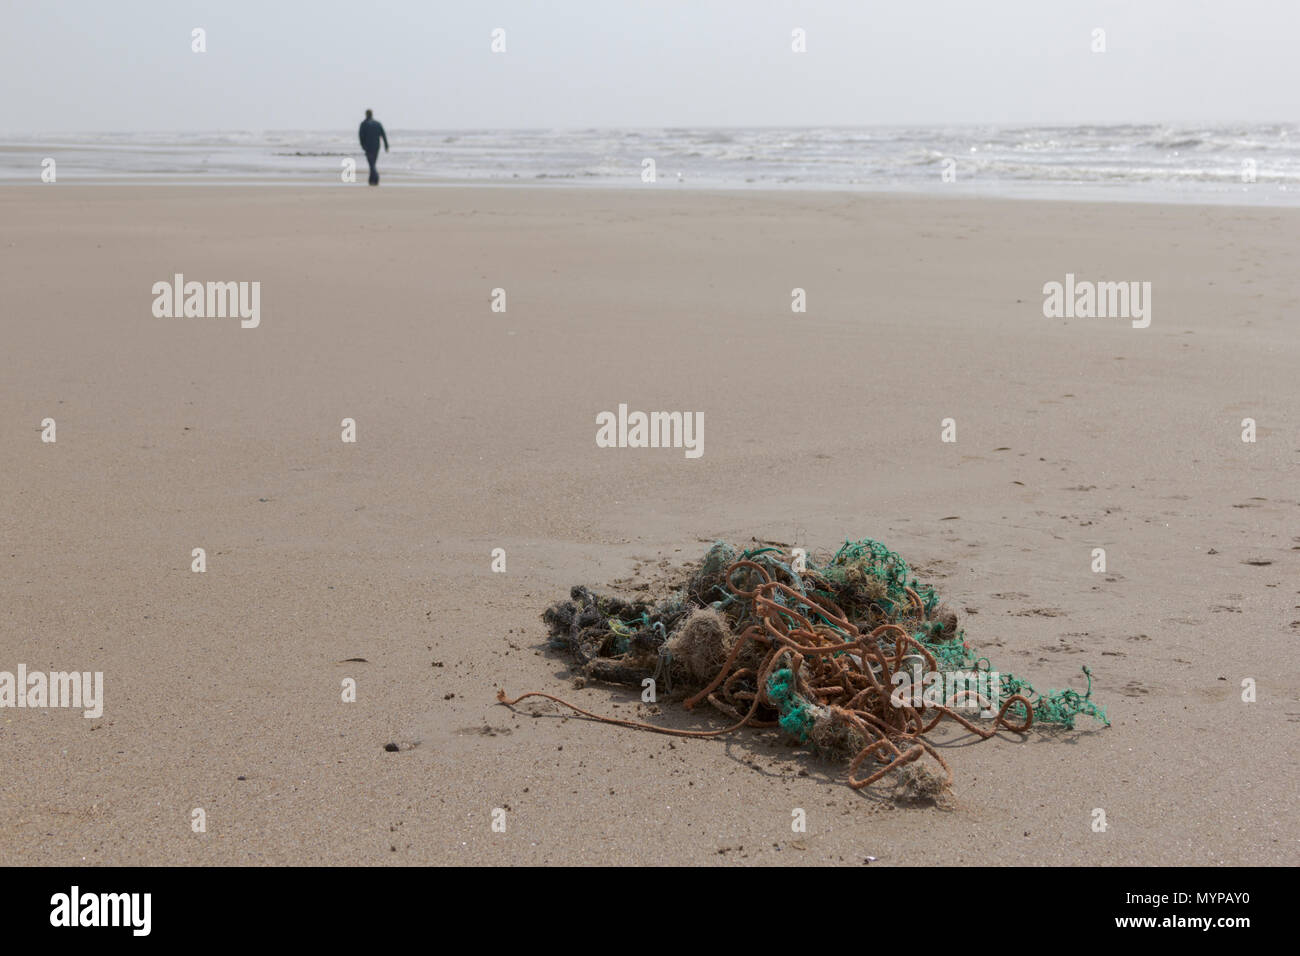 Plastic on the beach, Porthcawl, Mid Glamorgan, Wales, UK. 14th April 2018. UK. The end result of plastic and pollution on the planet. - Stock Image